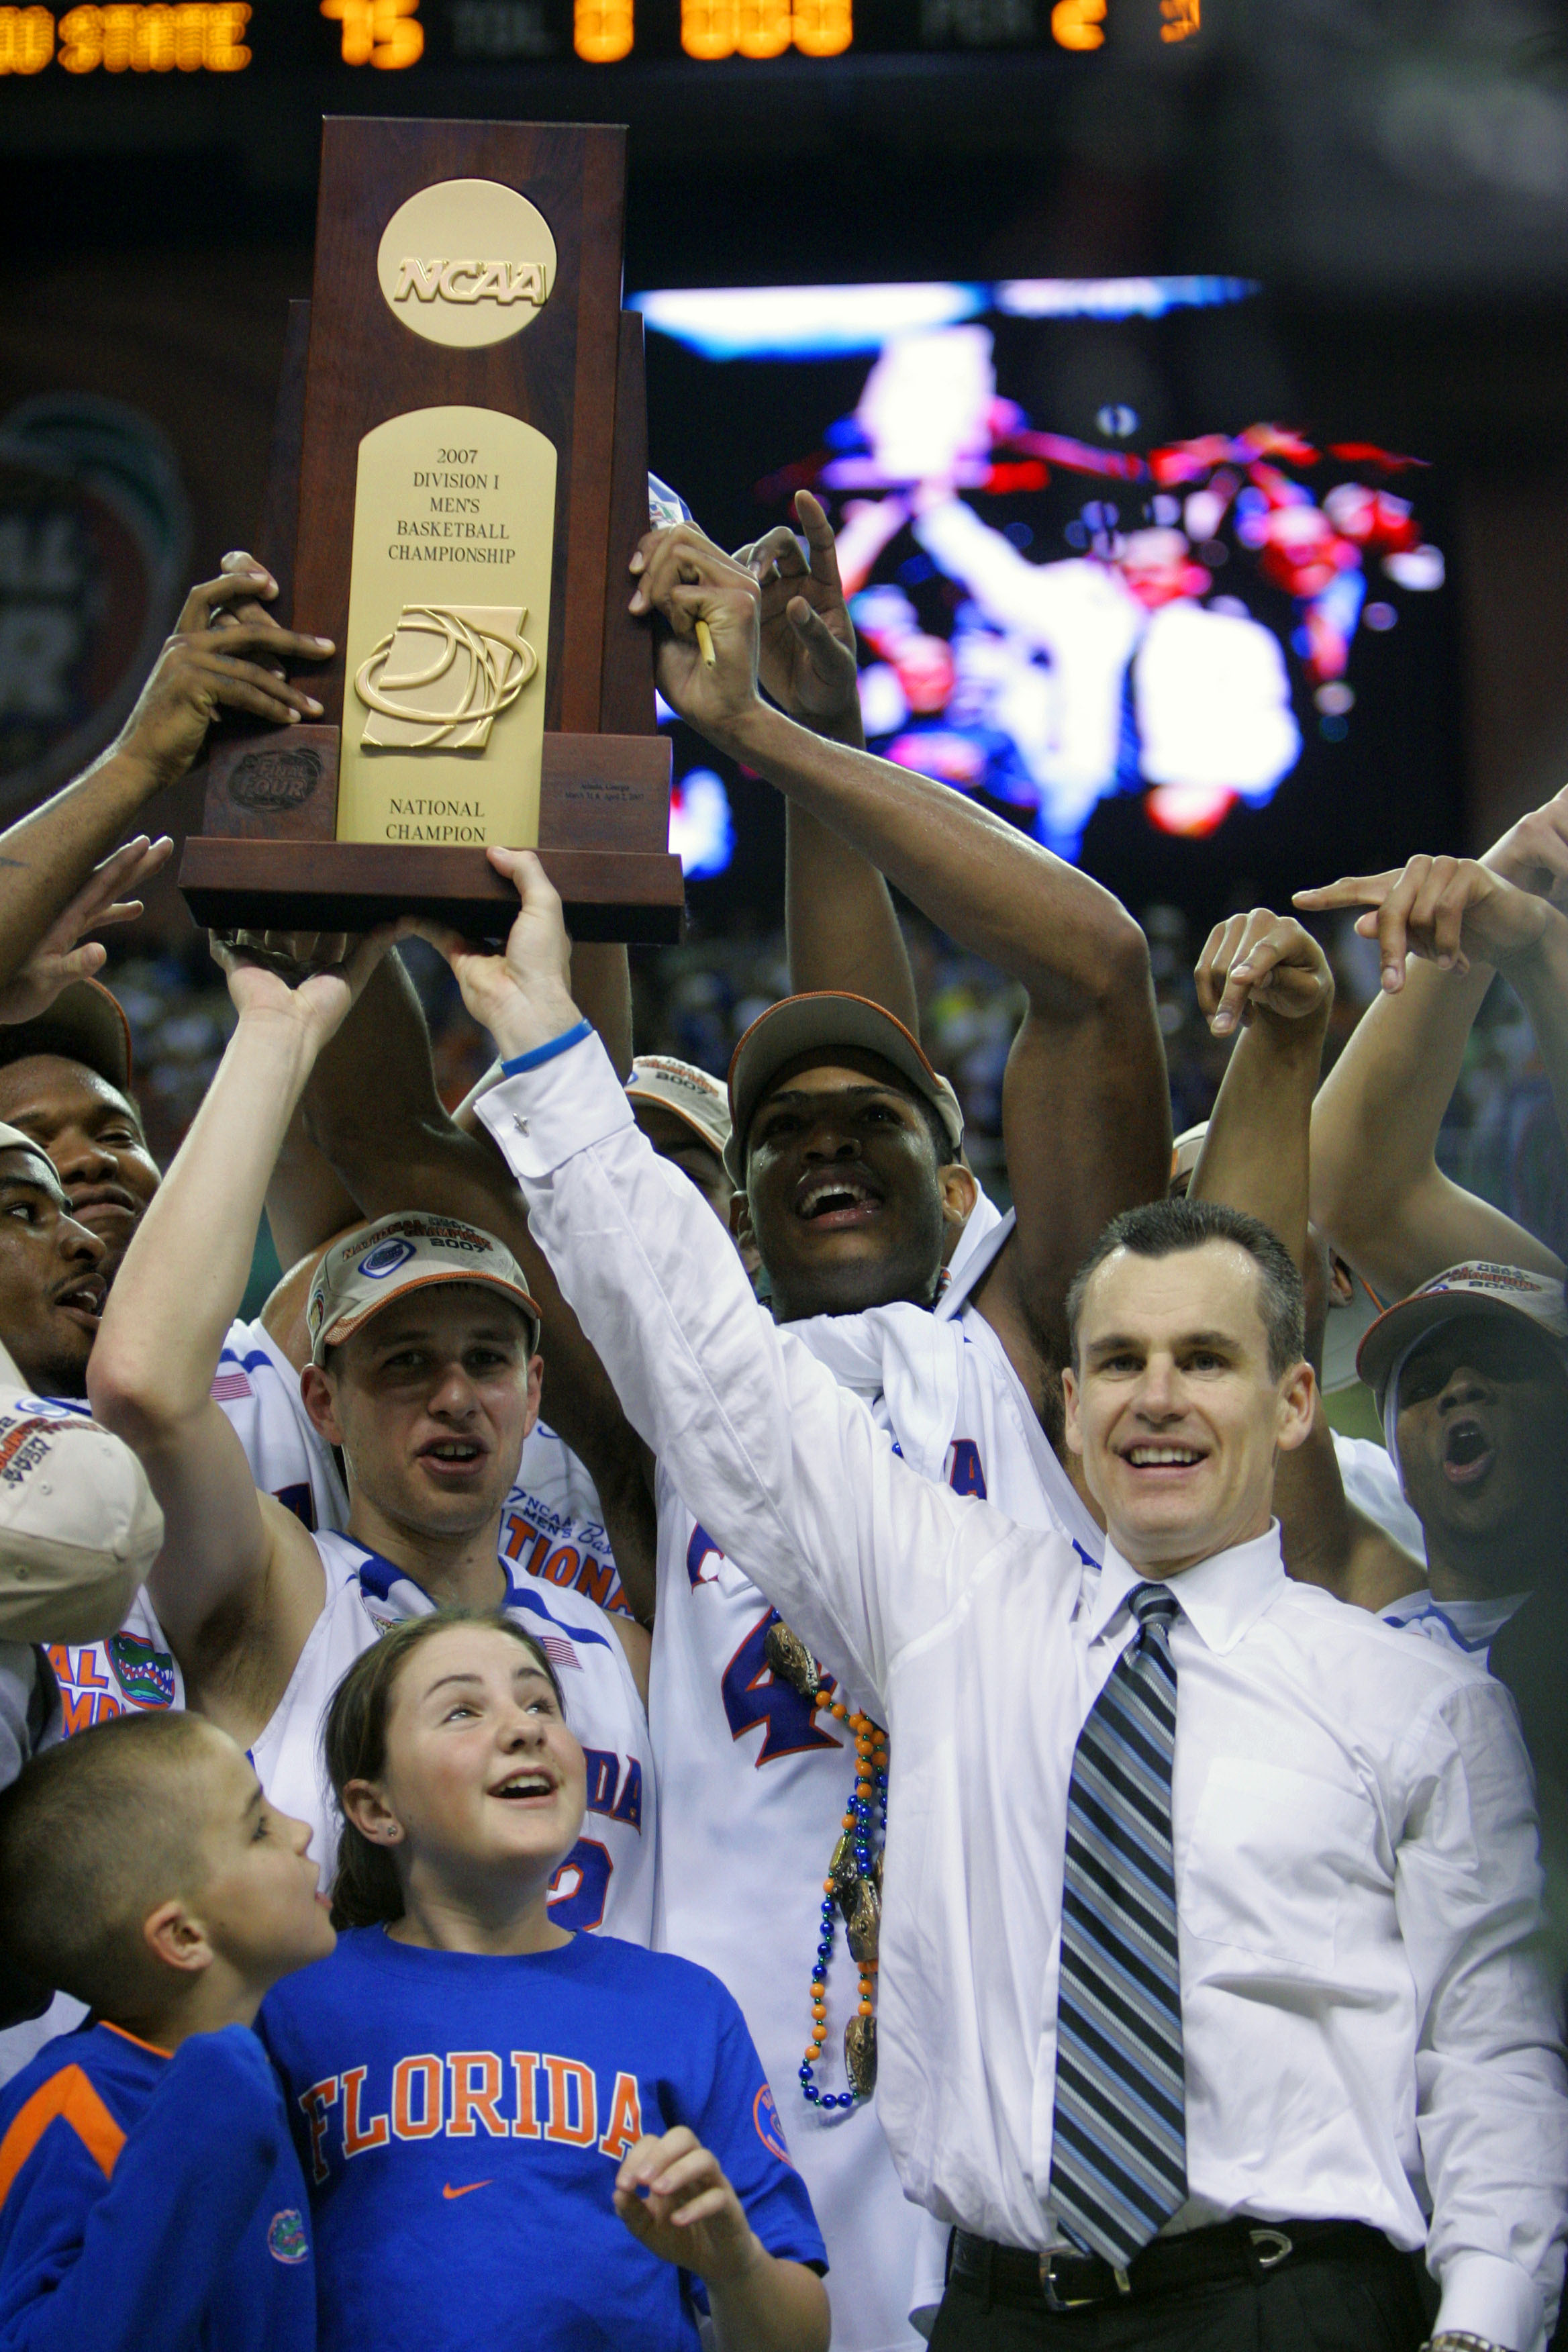 FILE - In this Apri 2, 2007, file photo, Florida coach Billy Donovan, right,  holds up the championship trophy after the defeated Ohio State 84-75 in the NCAA Final Four college basketball championship at the Georgia Dome in Atlanta. Florida has the tough